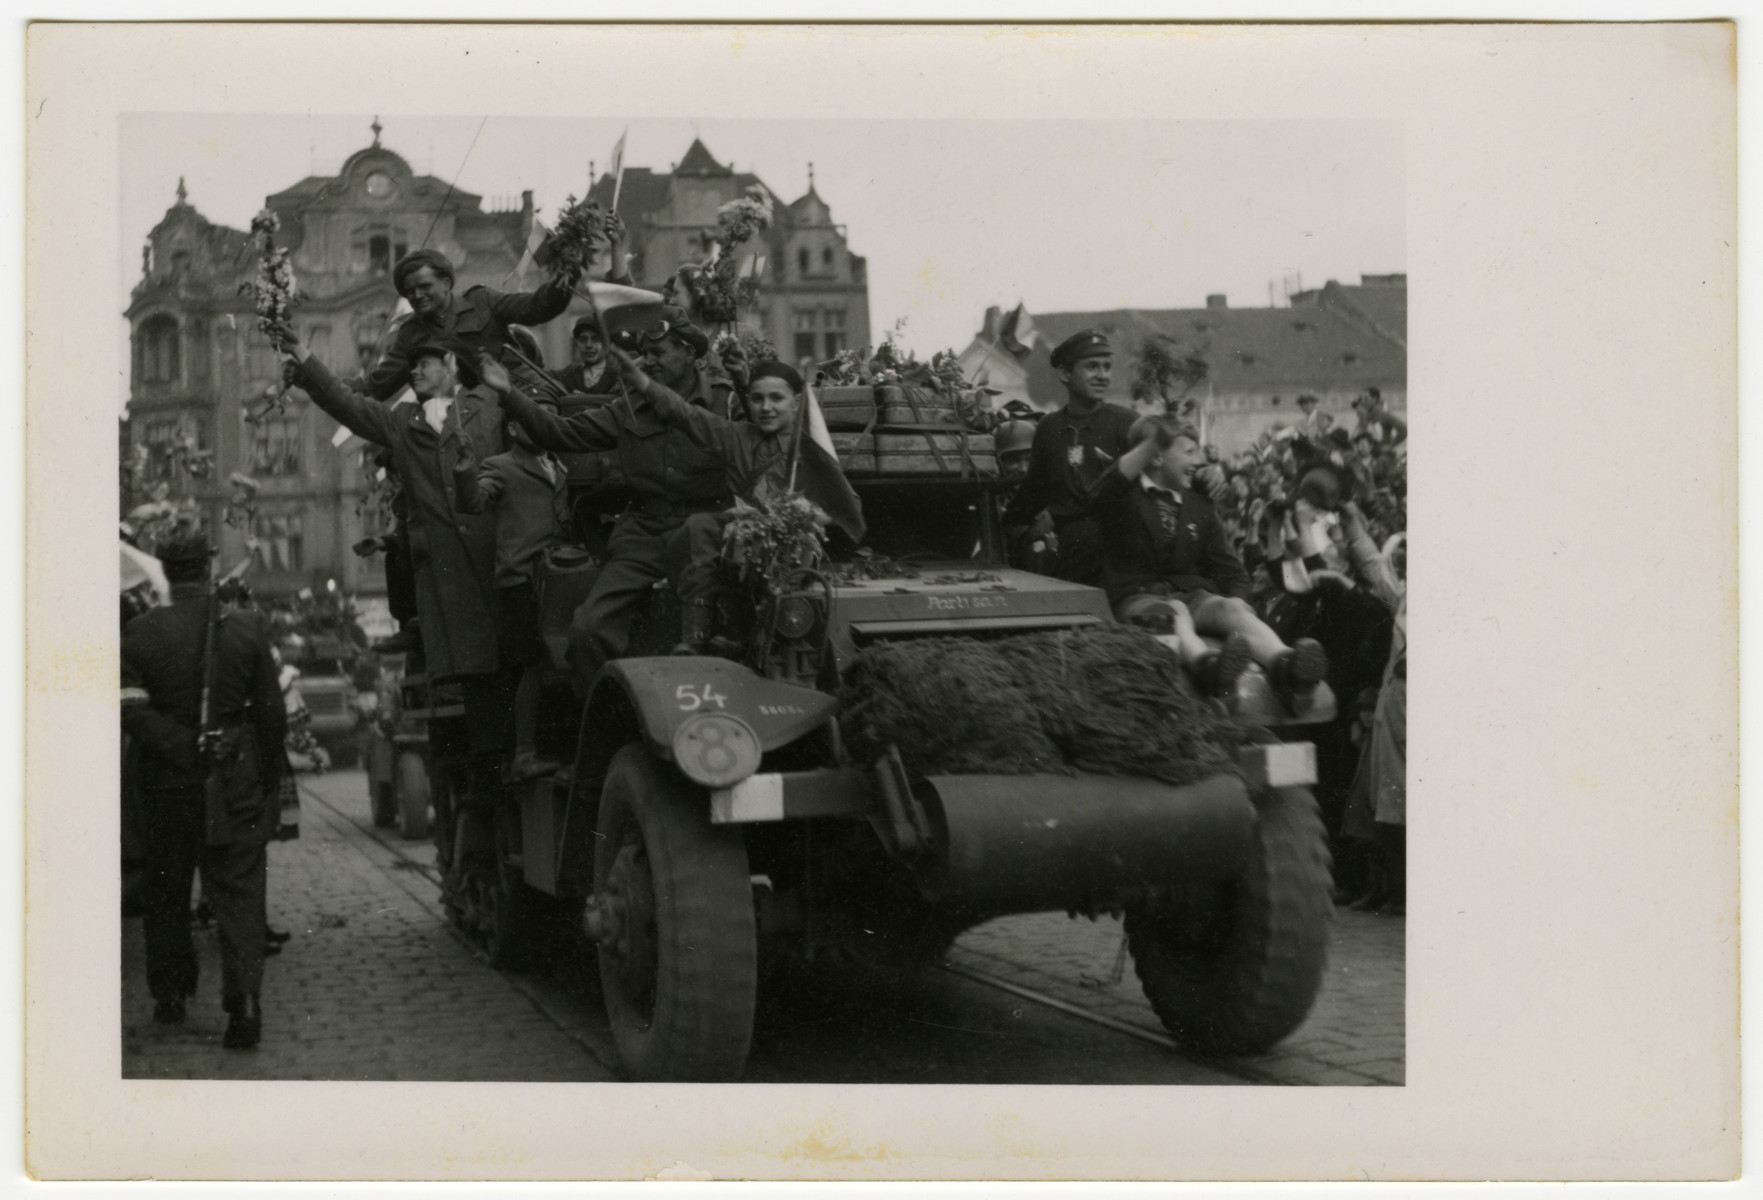 Residents of Pilsen, Czechoslovakia ride on an army truck in the parade celebrating the town's liberation.